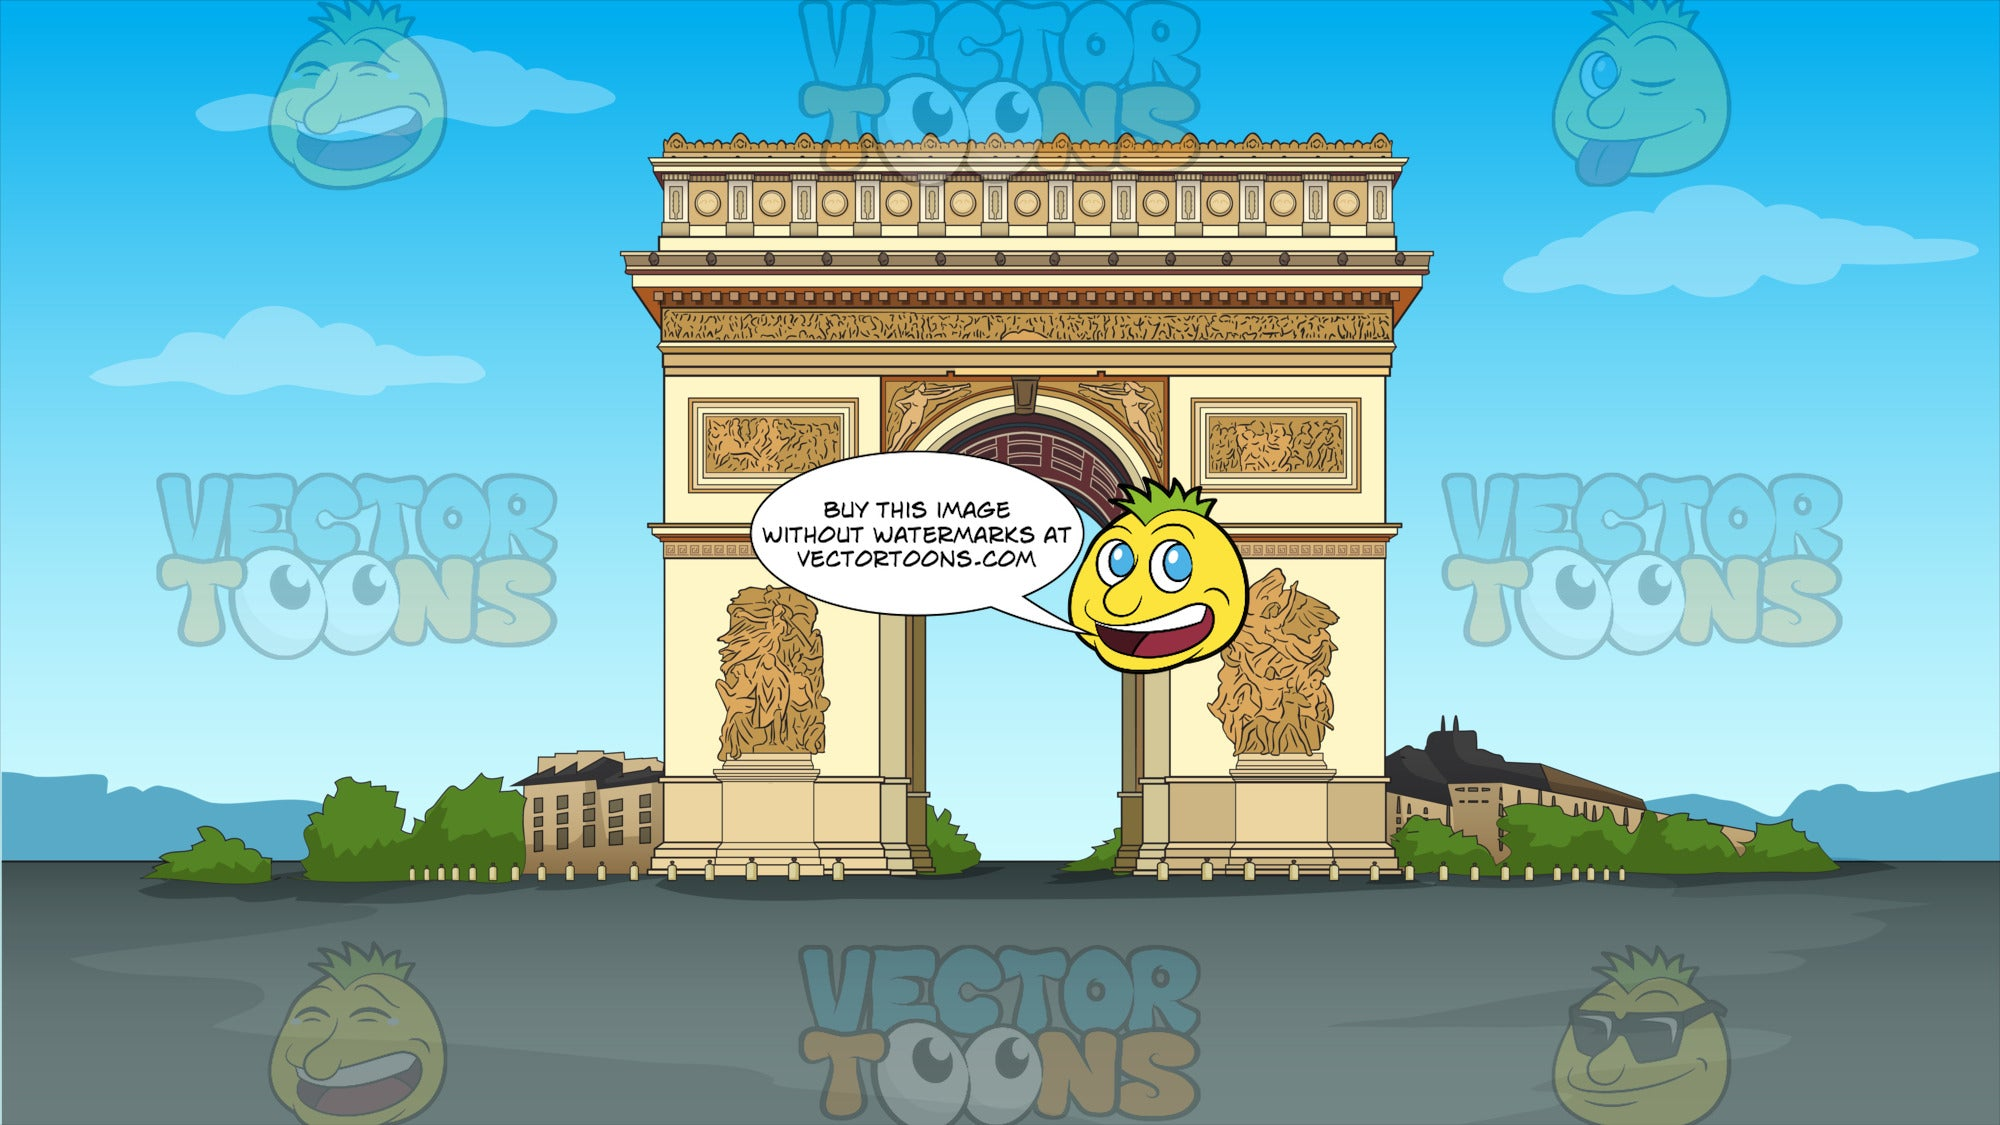 The Arc de Triomphe Background. A view of the Arc de Triomphe, one of the most famous monuments in Paris, France, which stands at the western end of the Champs-ƒlysŽes at the centre of Place Charles de Gaulle